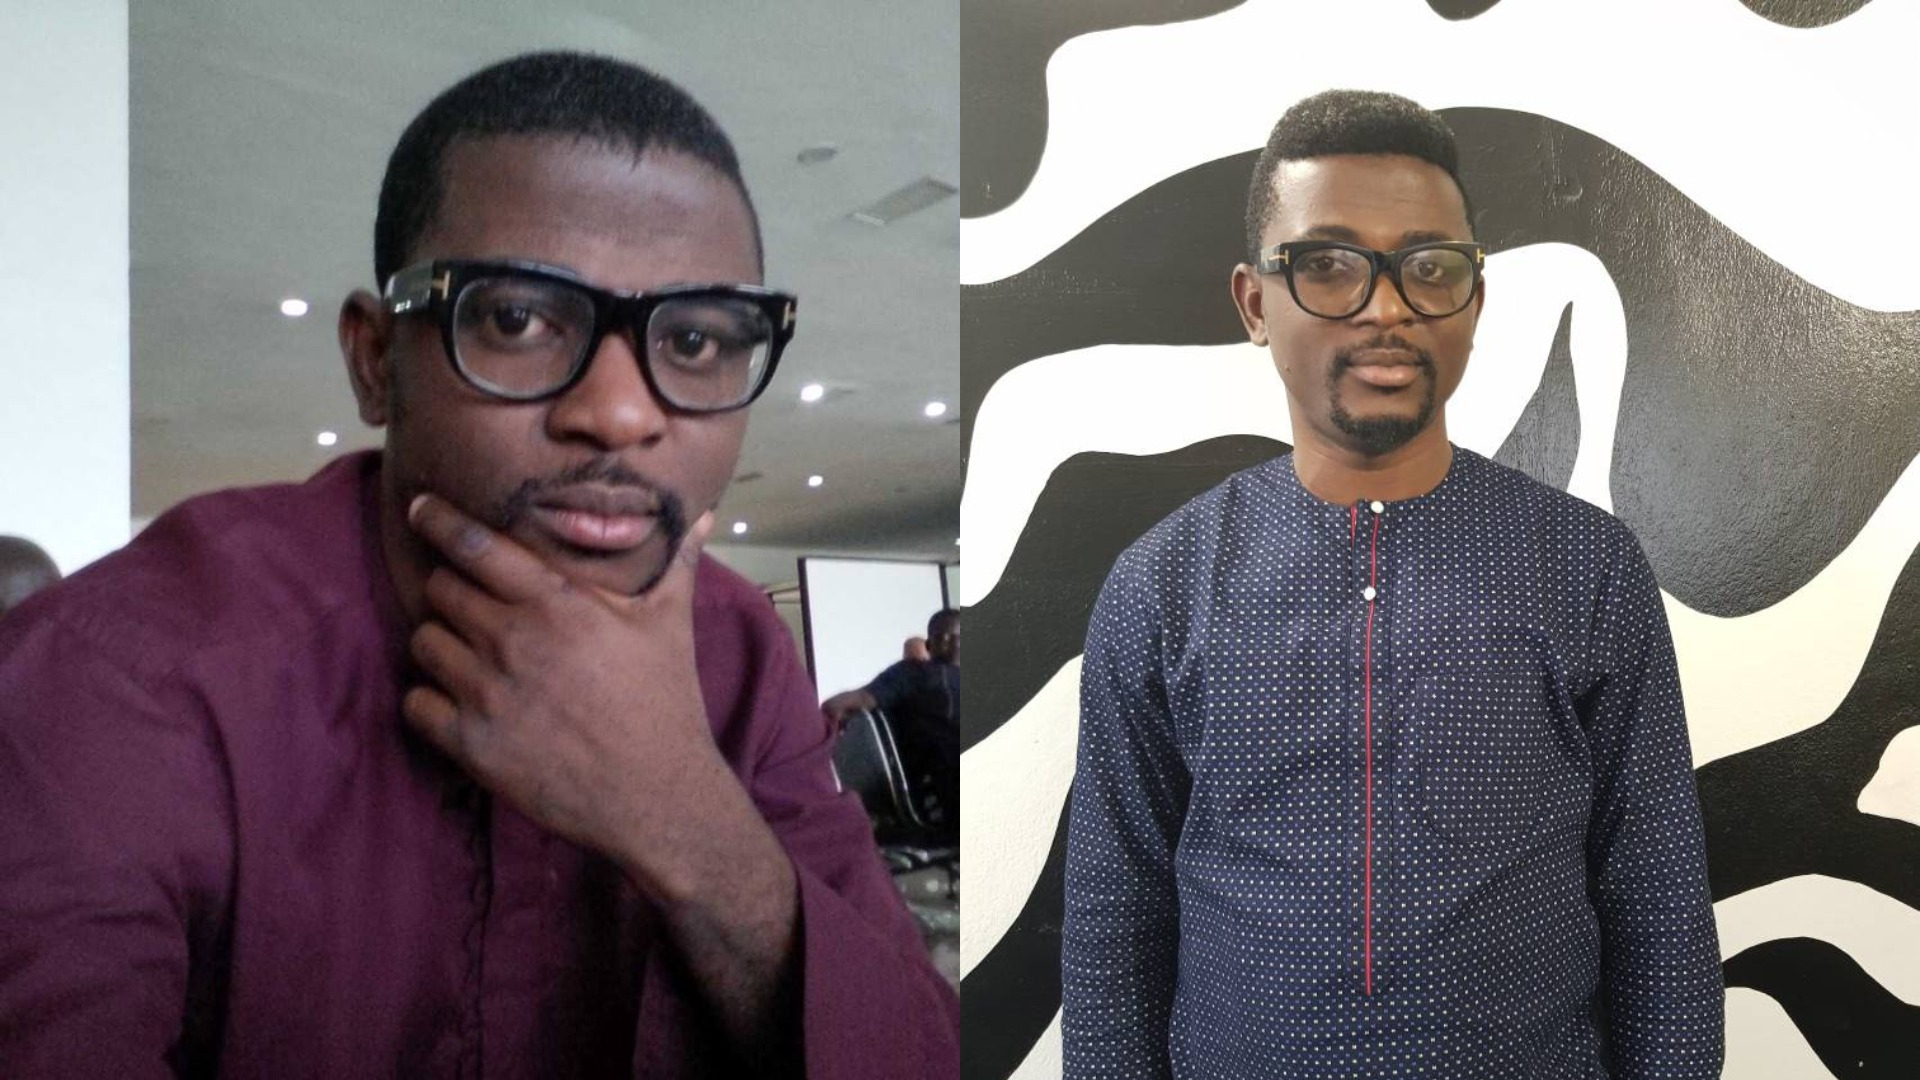 PR Specialist, Samuel Olatunji recounts how he almost committed Suicide 8 years ago